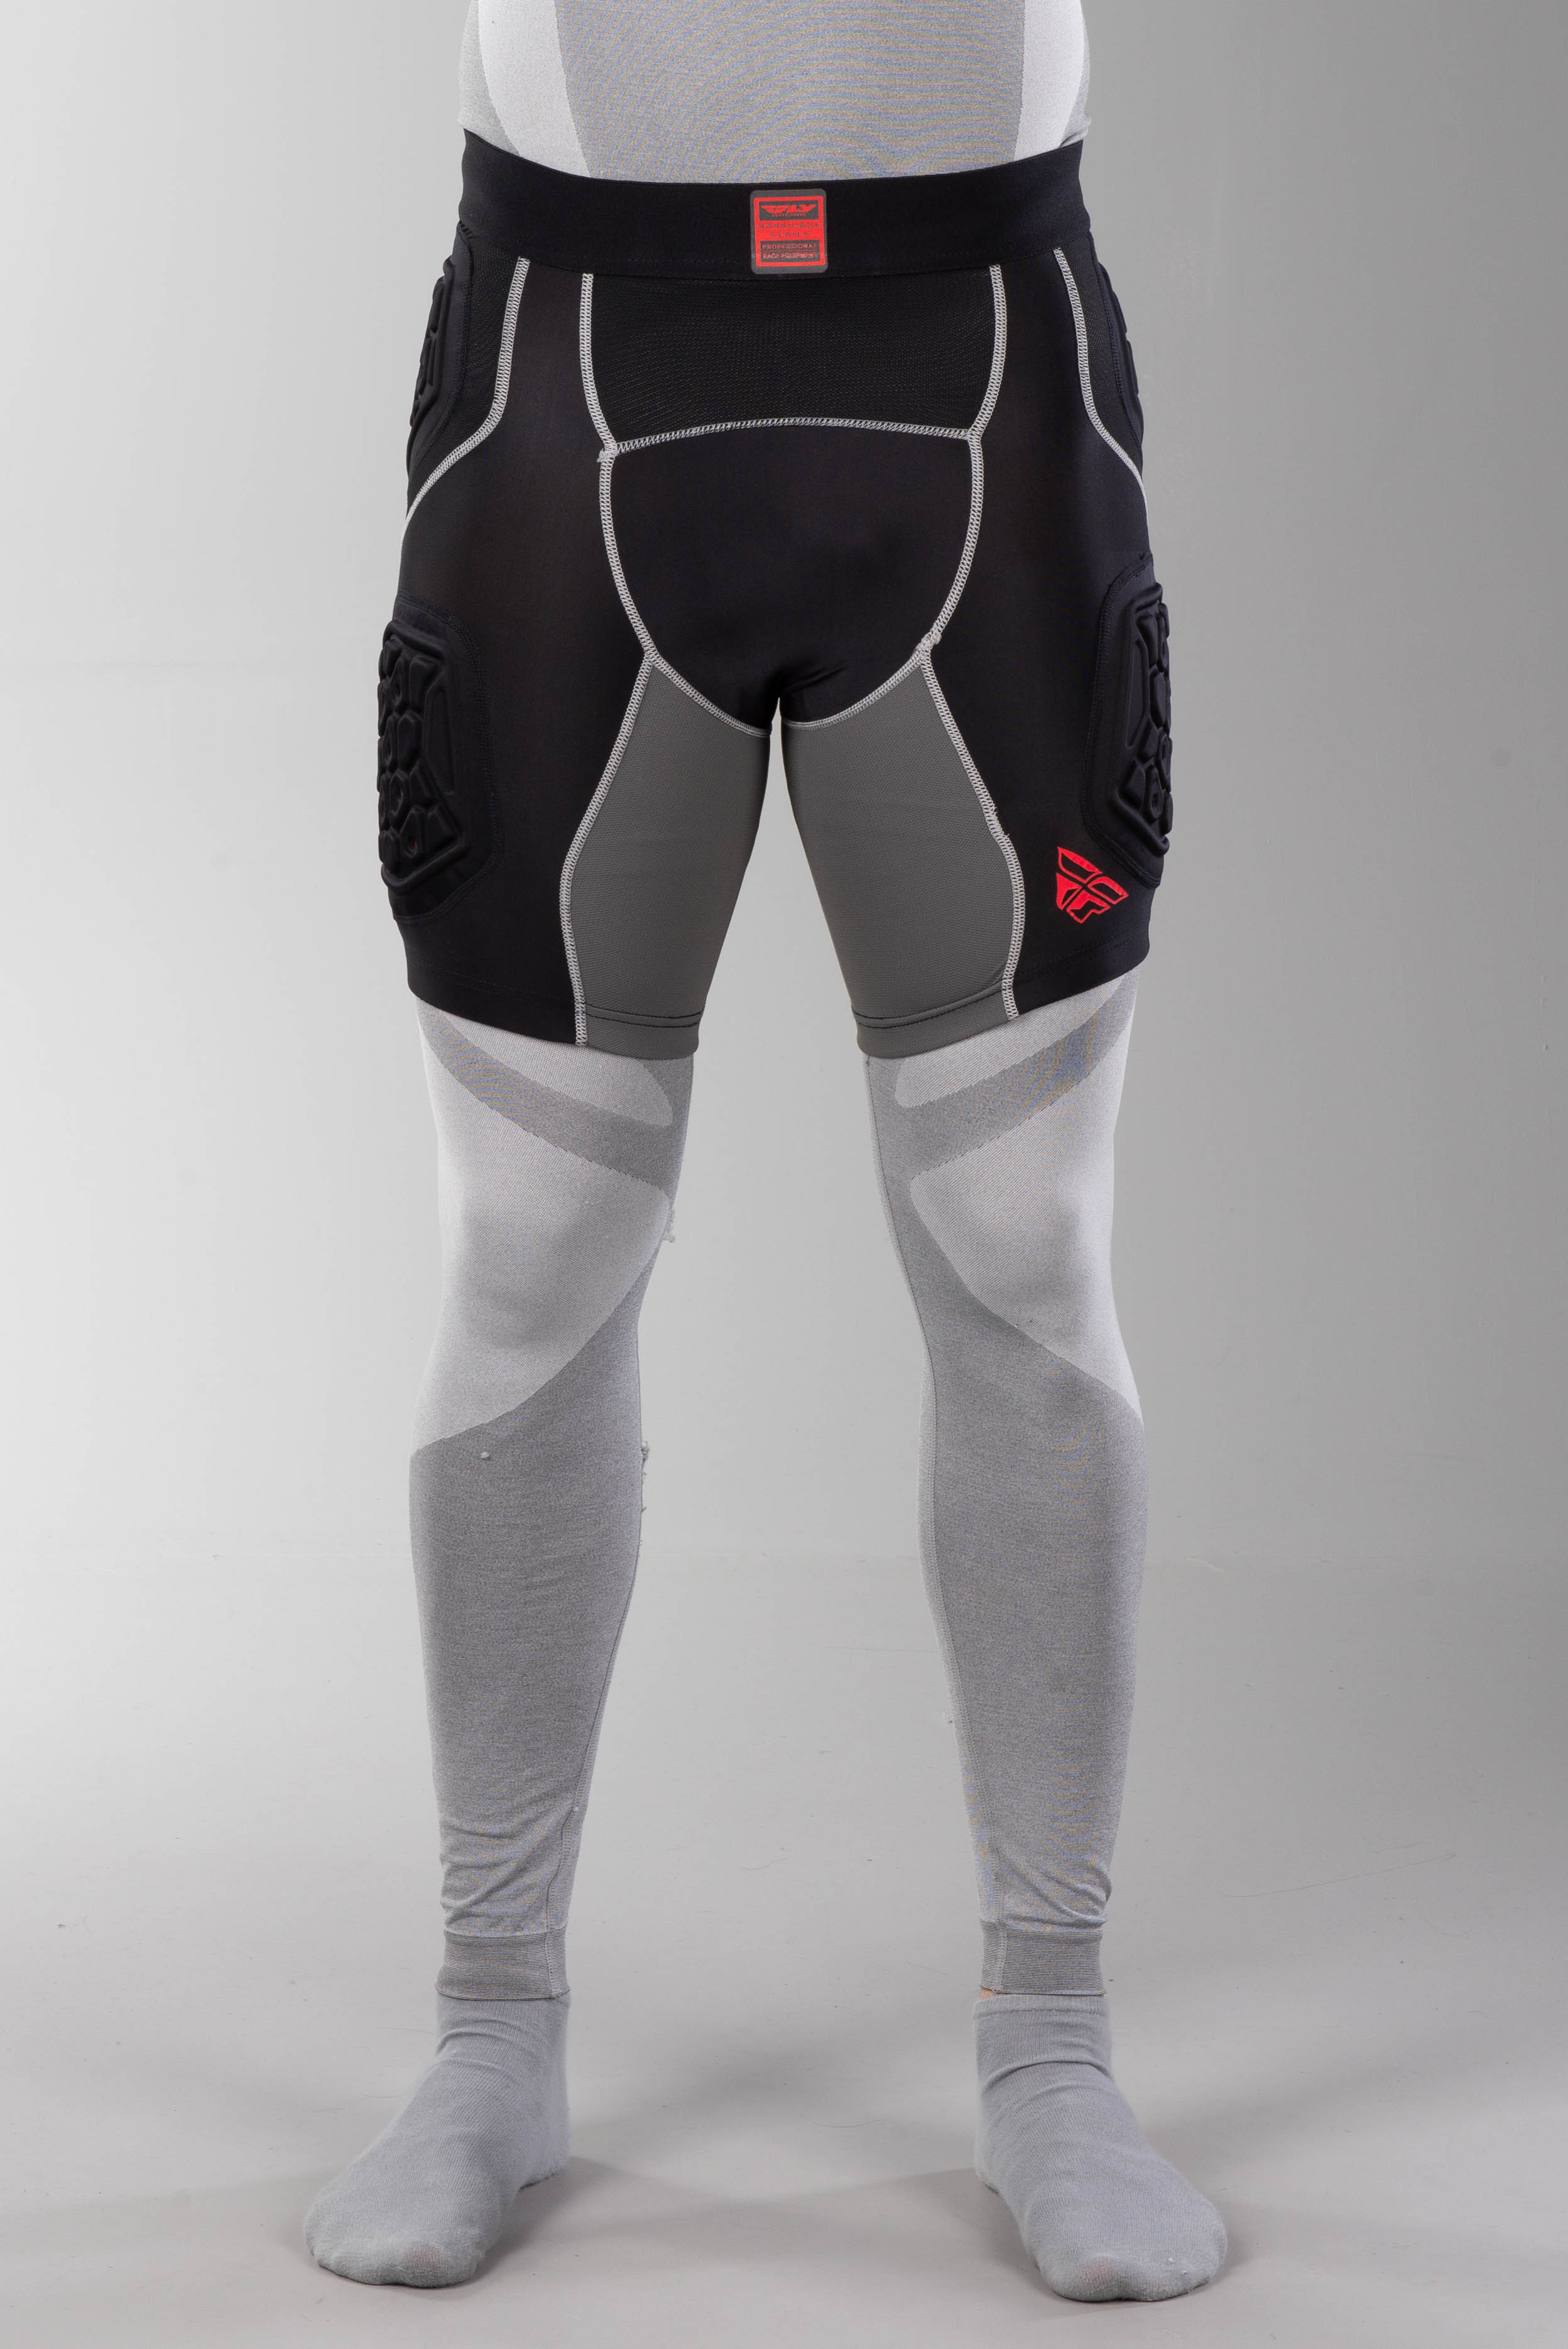 Fly Racing Compression Shorts